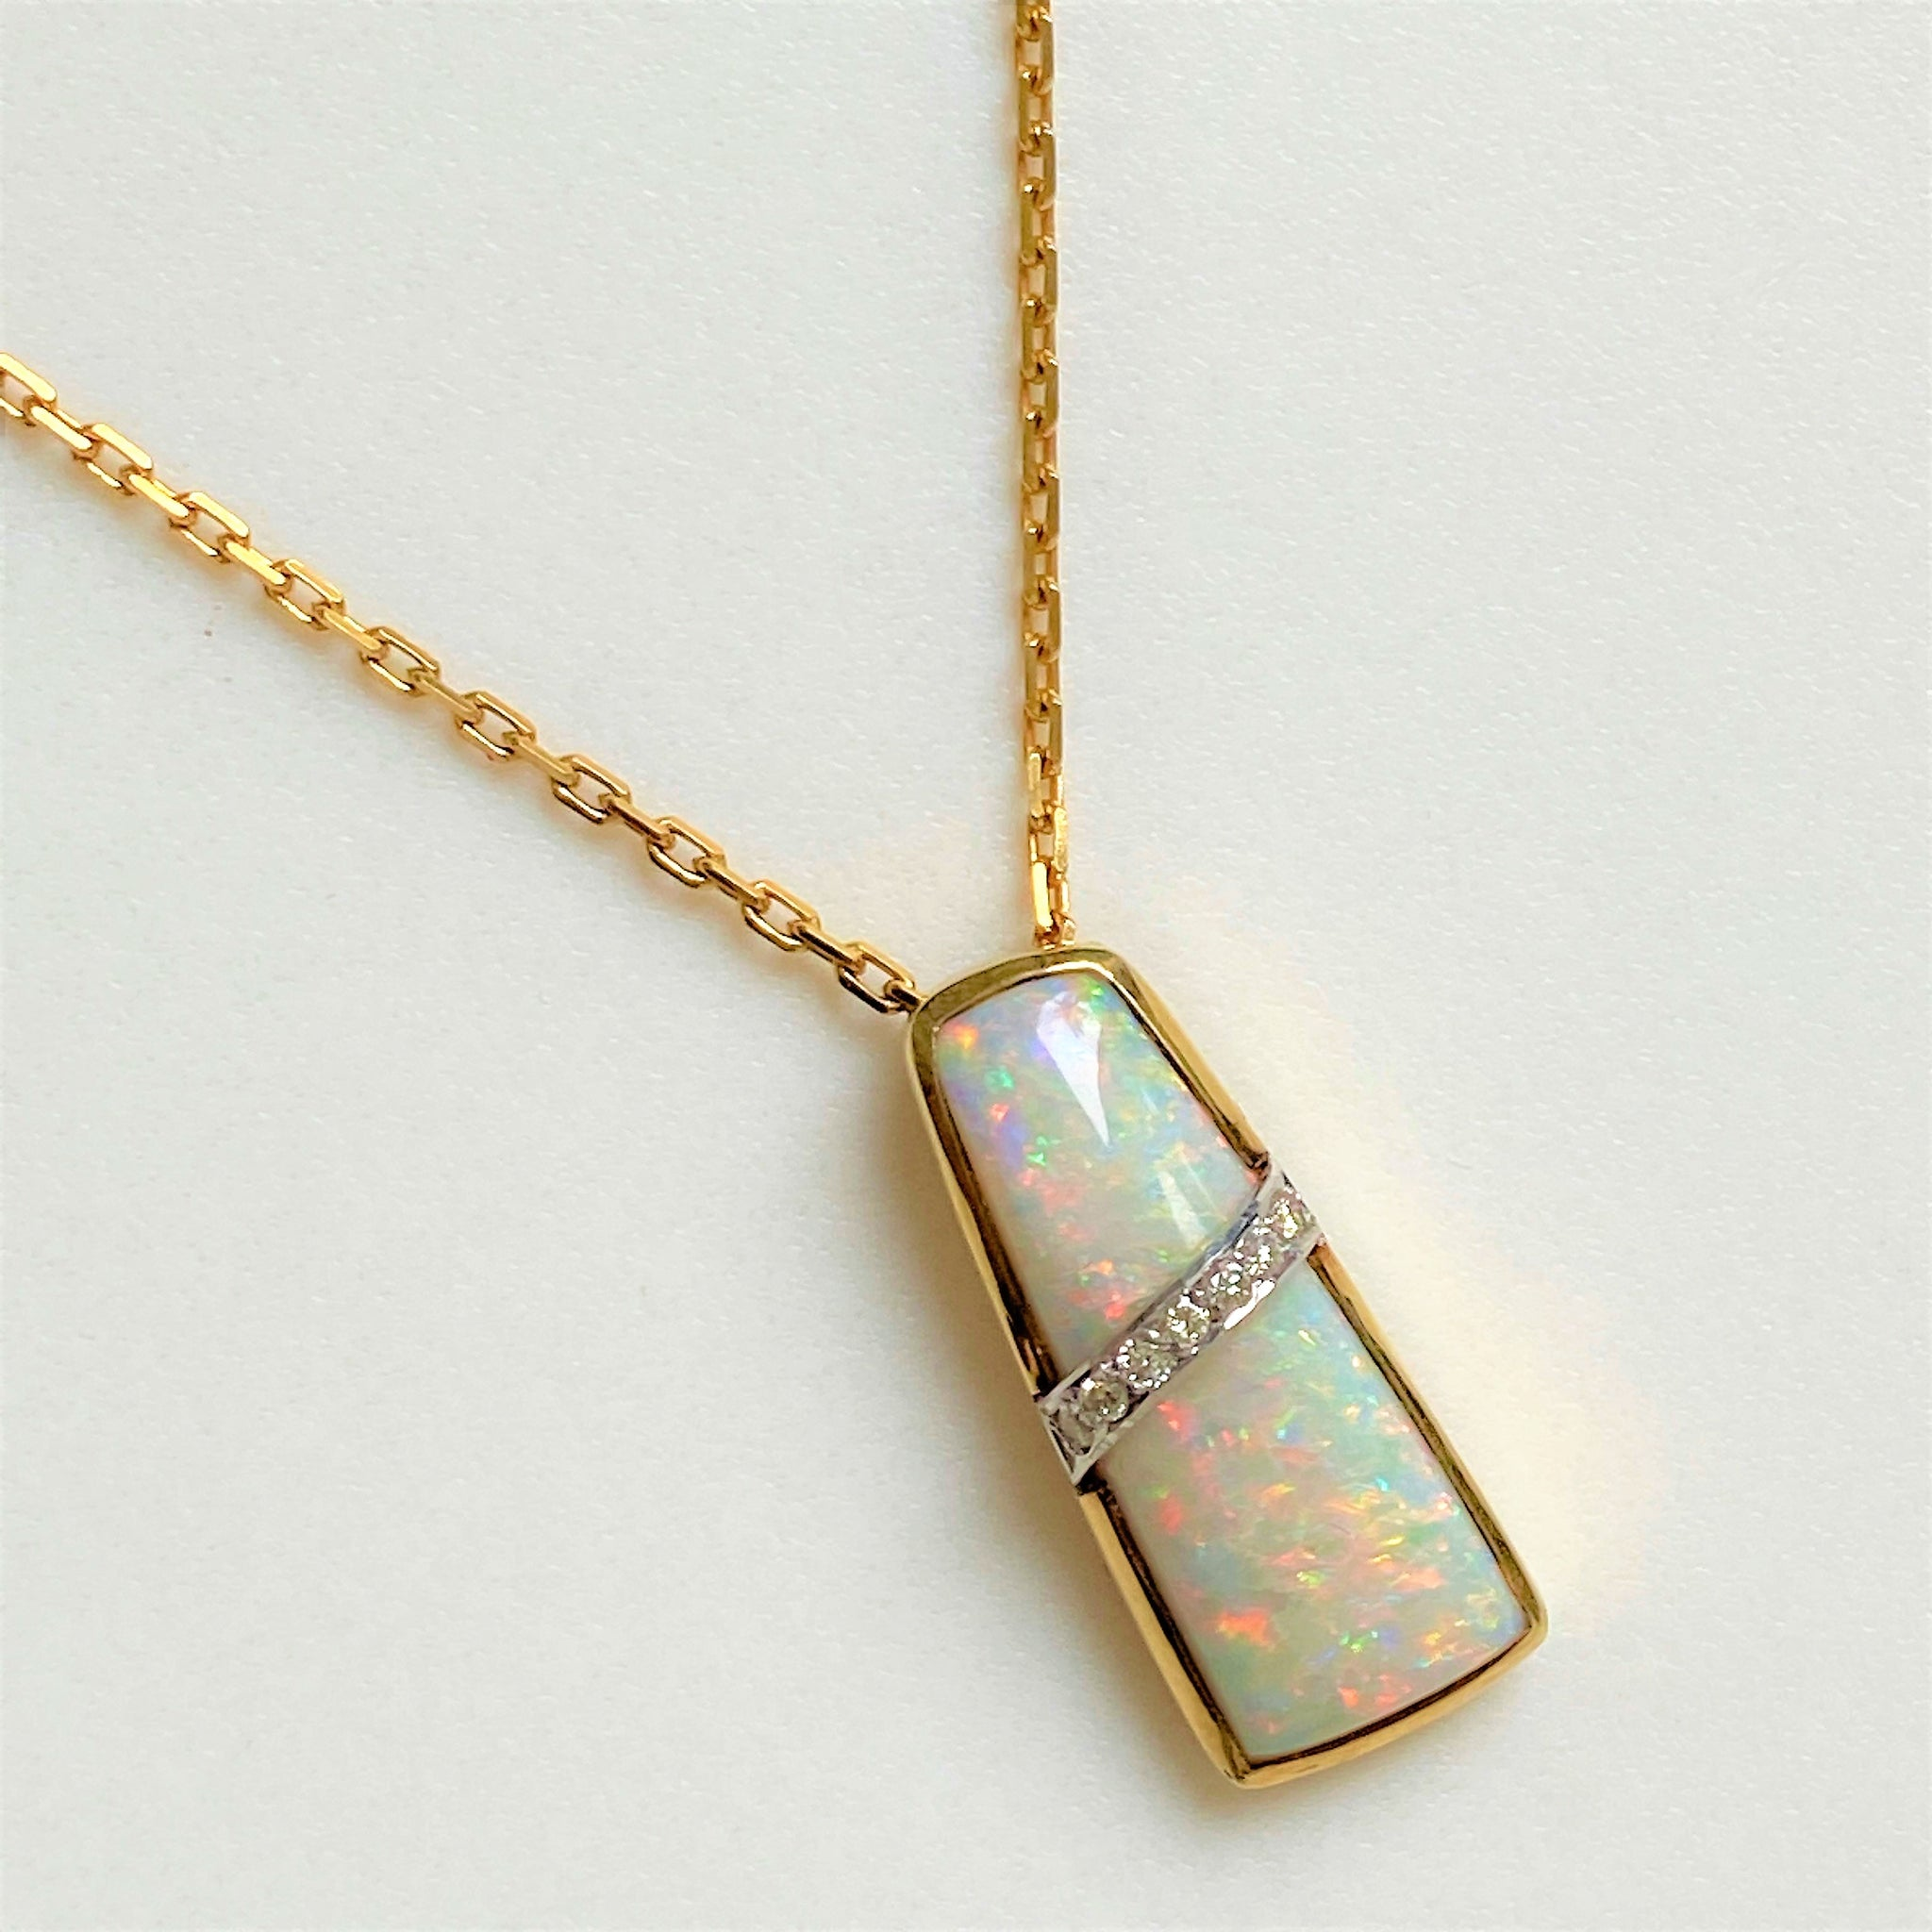 14ct and 9ct Gold, Opal and Diamond Pendant Necklace